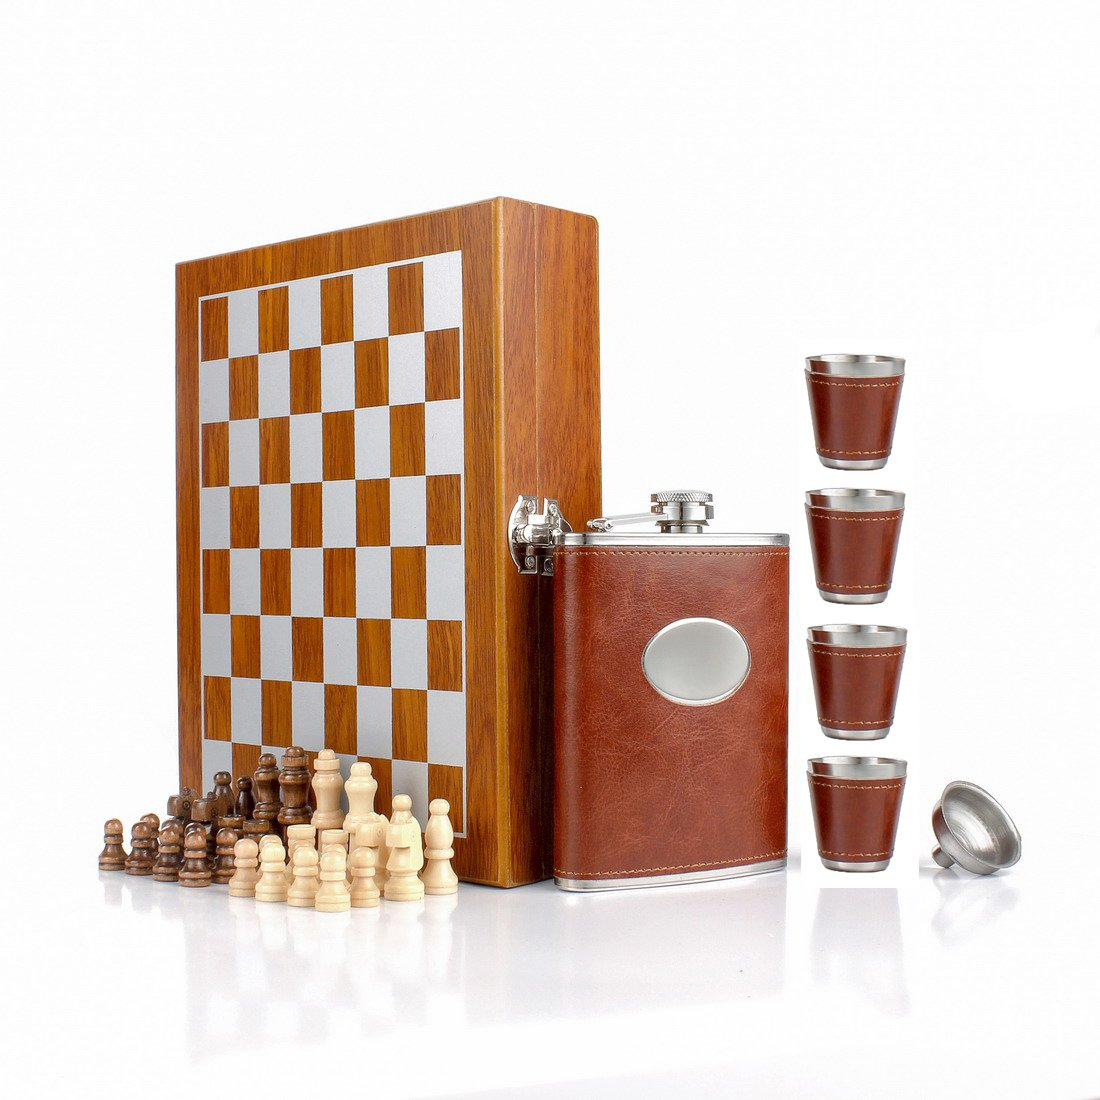 GENNISSY 9.4'' Wooden Chess 8OZ Brown Leather Hip Flask Set - Stainless Steel Flasks With Funnel and 4 Cups Gift Box